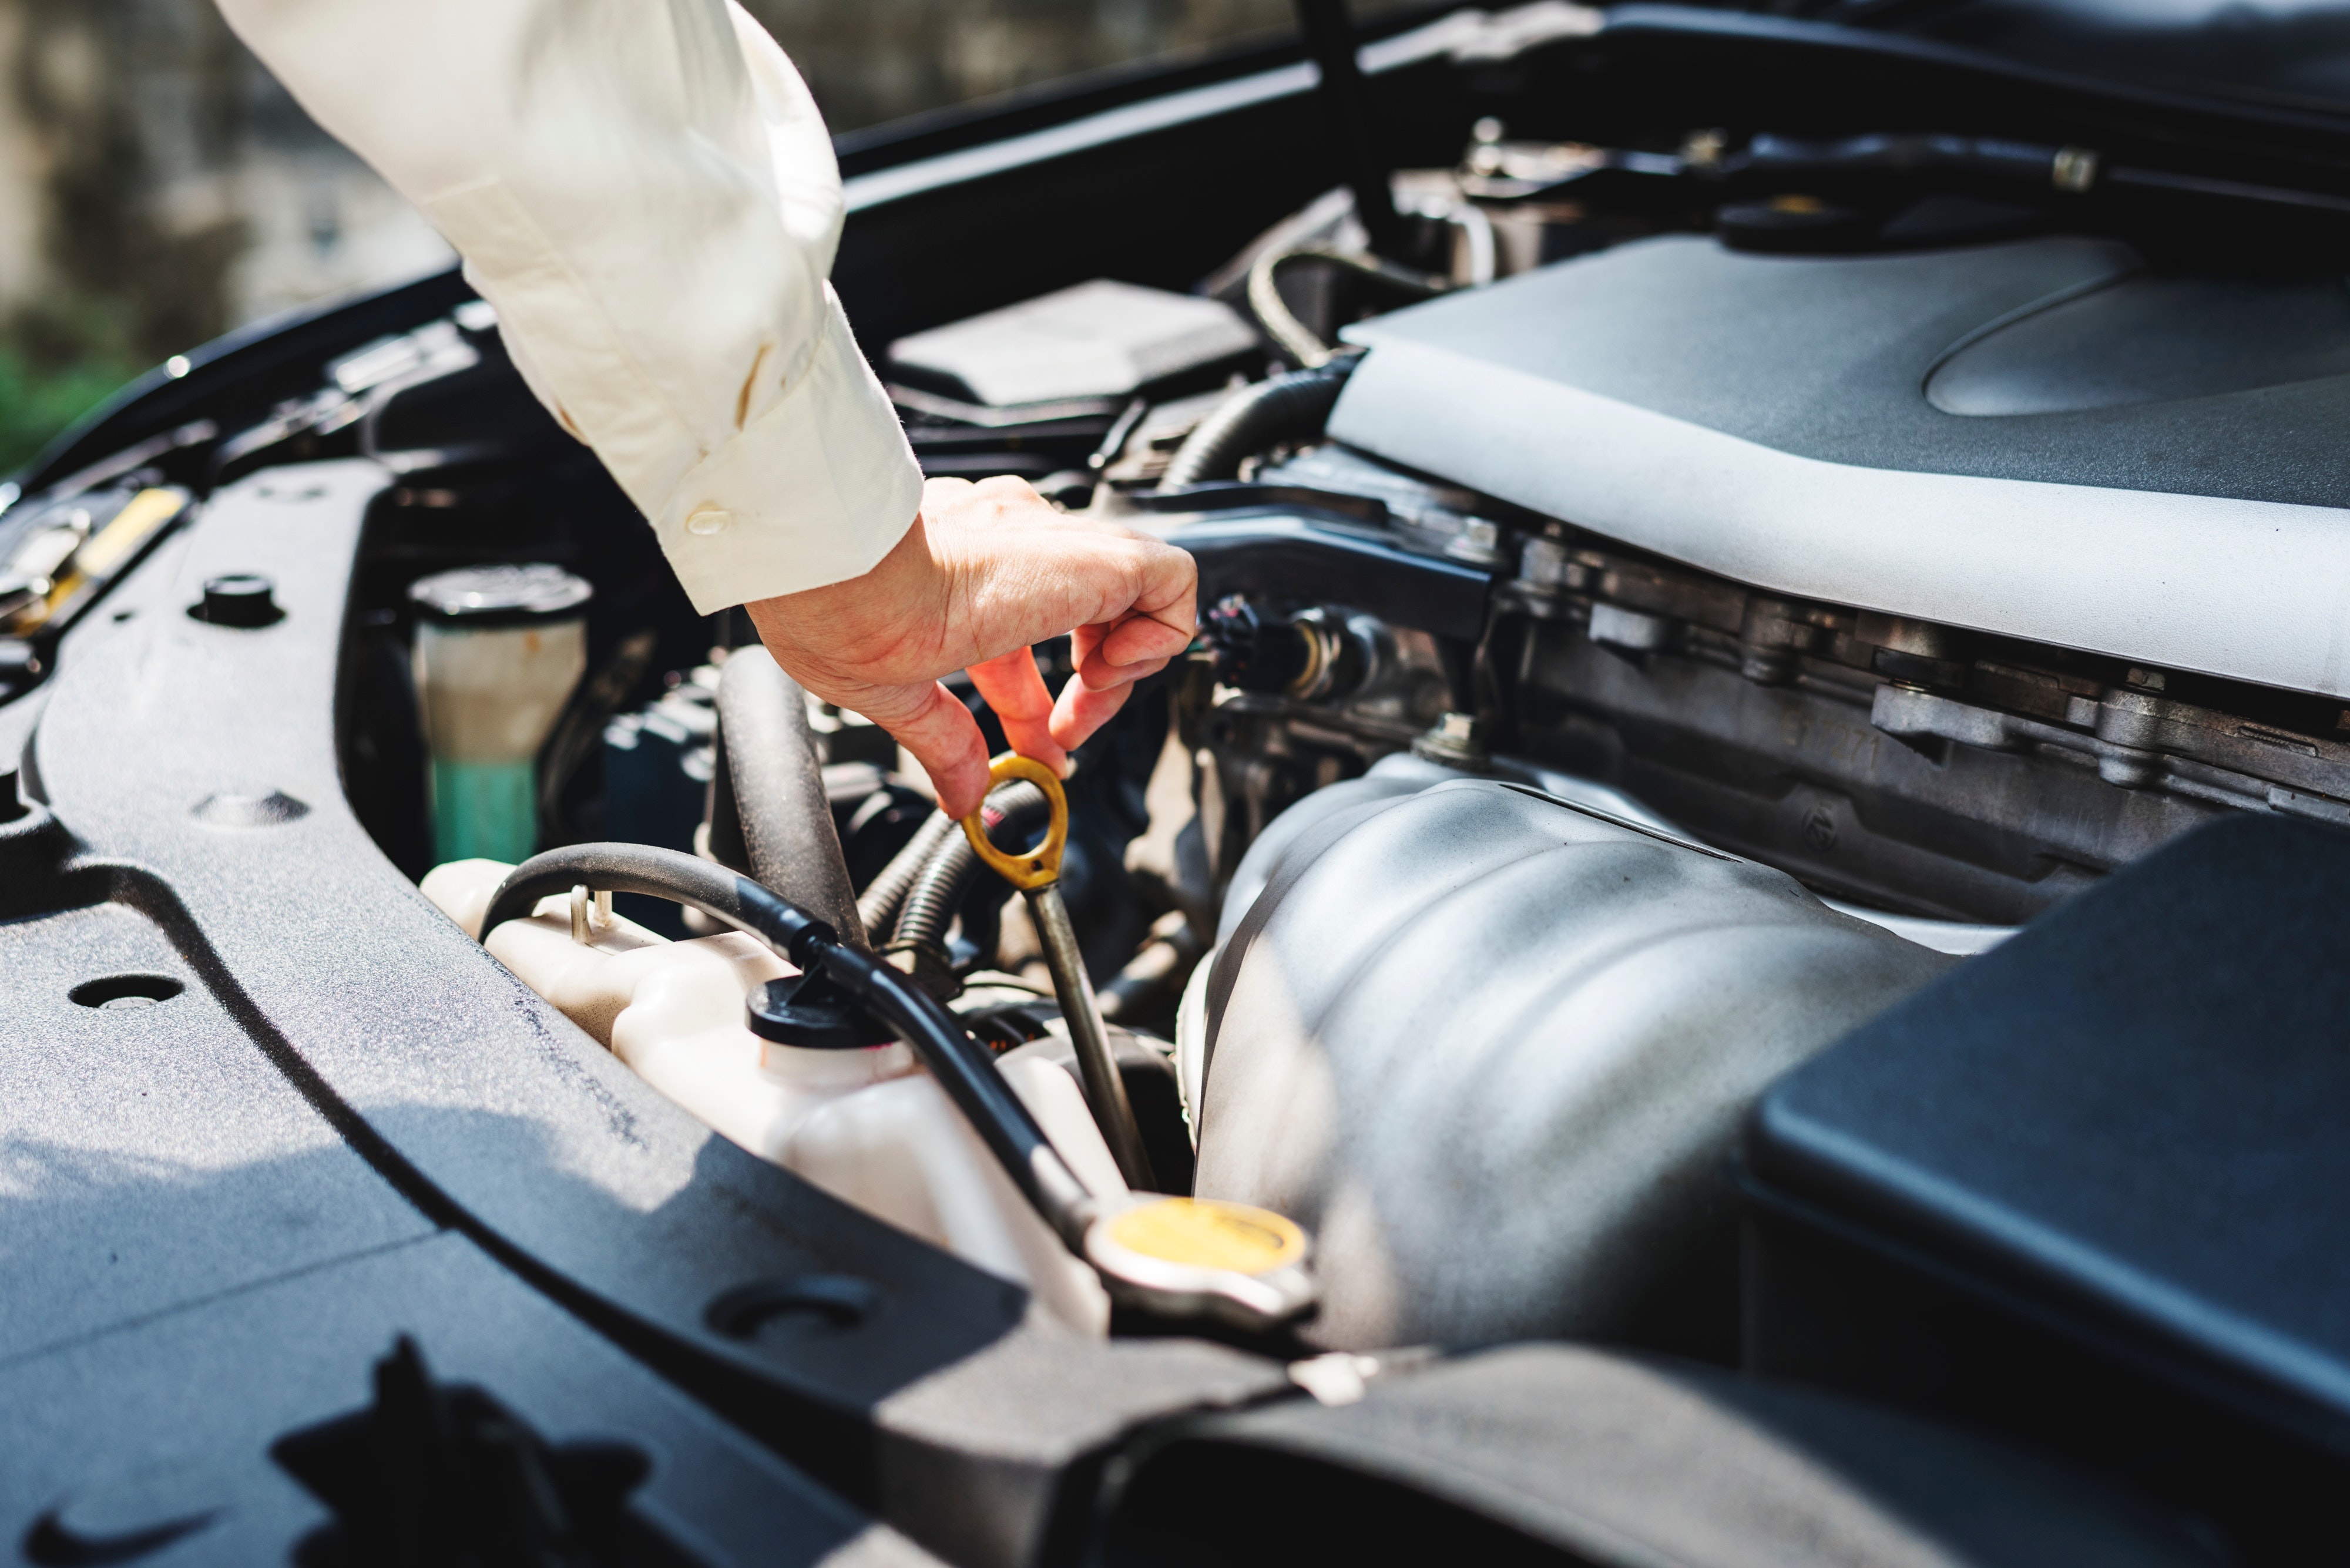 Don T Overlook One Of The Easiest Ways To Take Care Your Vehicle An Oil Change From Honda Near M Oregon At We Pride Ourselves